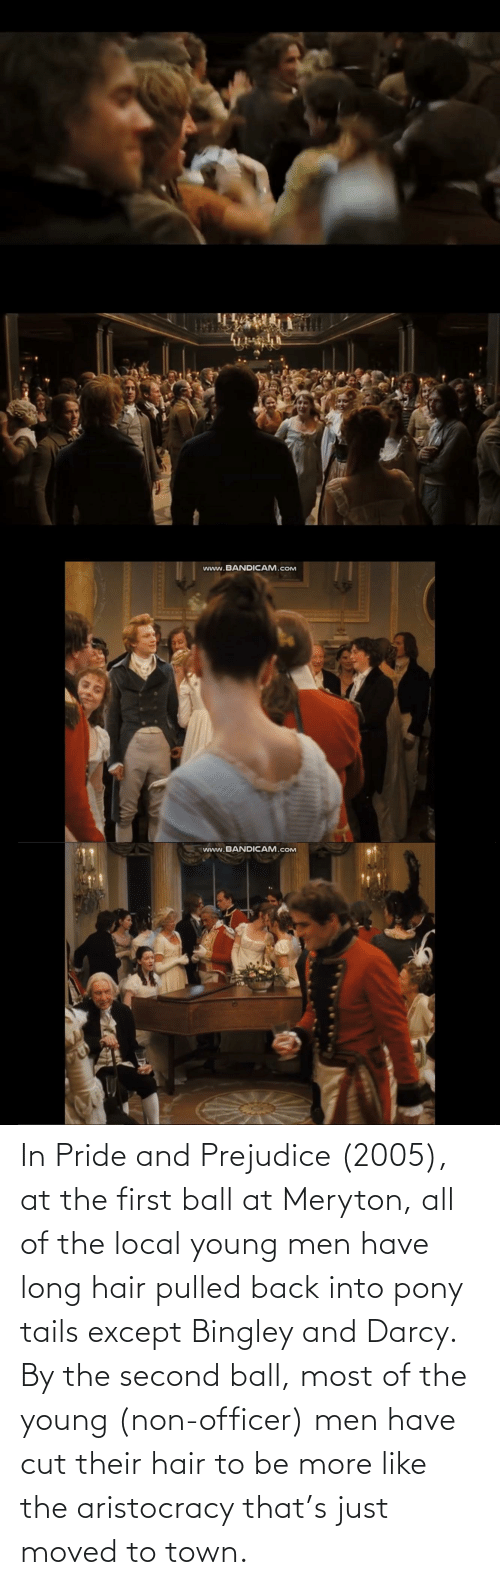 prejudice: www.BANDICAM.cOM  www.BANDICAM.cOM In Pride and Prejudice (2005), at the first ball at Meryton, all of the local young men have long hair pulled back into pony tails except Bingley and Darcy. By the second ball, most of the young (non-officer) men have cut their hair to be more like the aristocracy that's just moved to town.